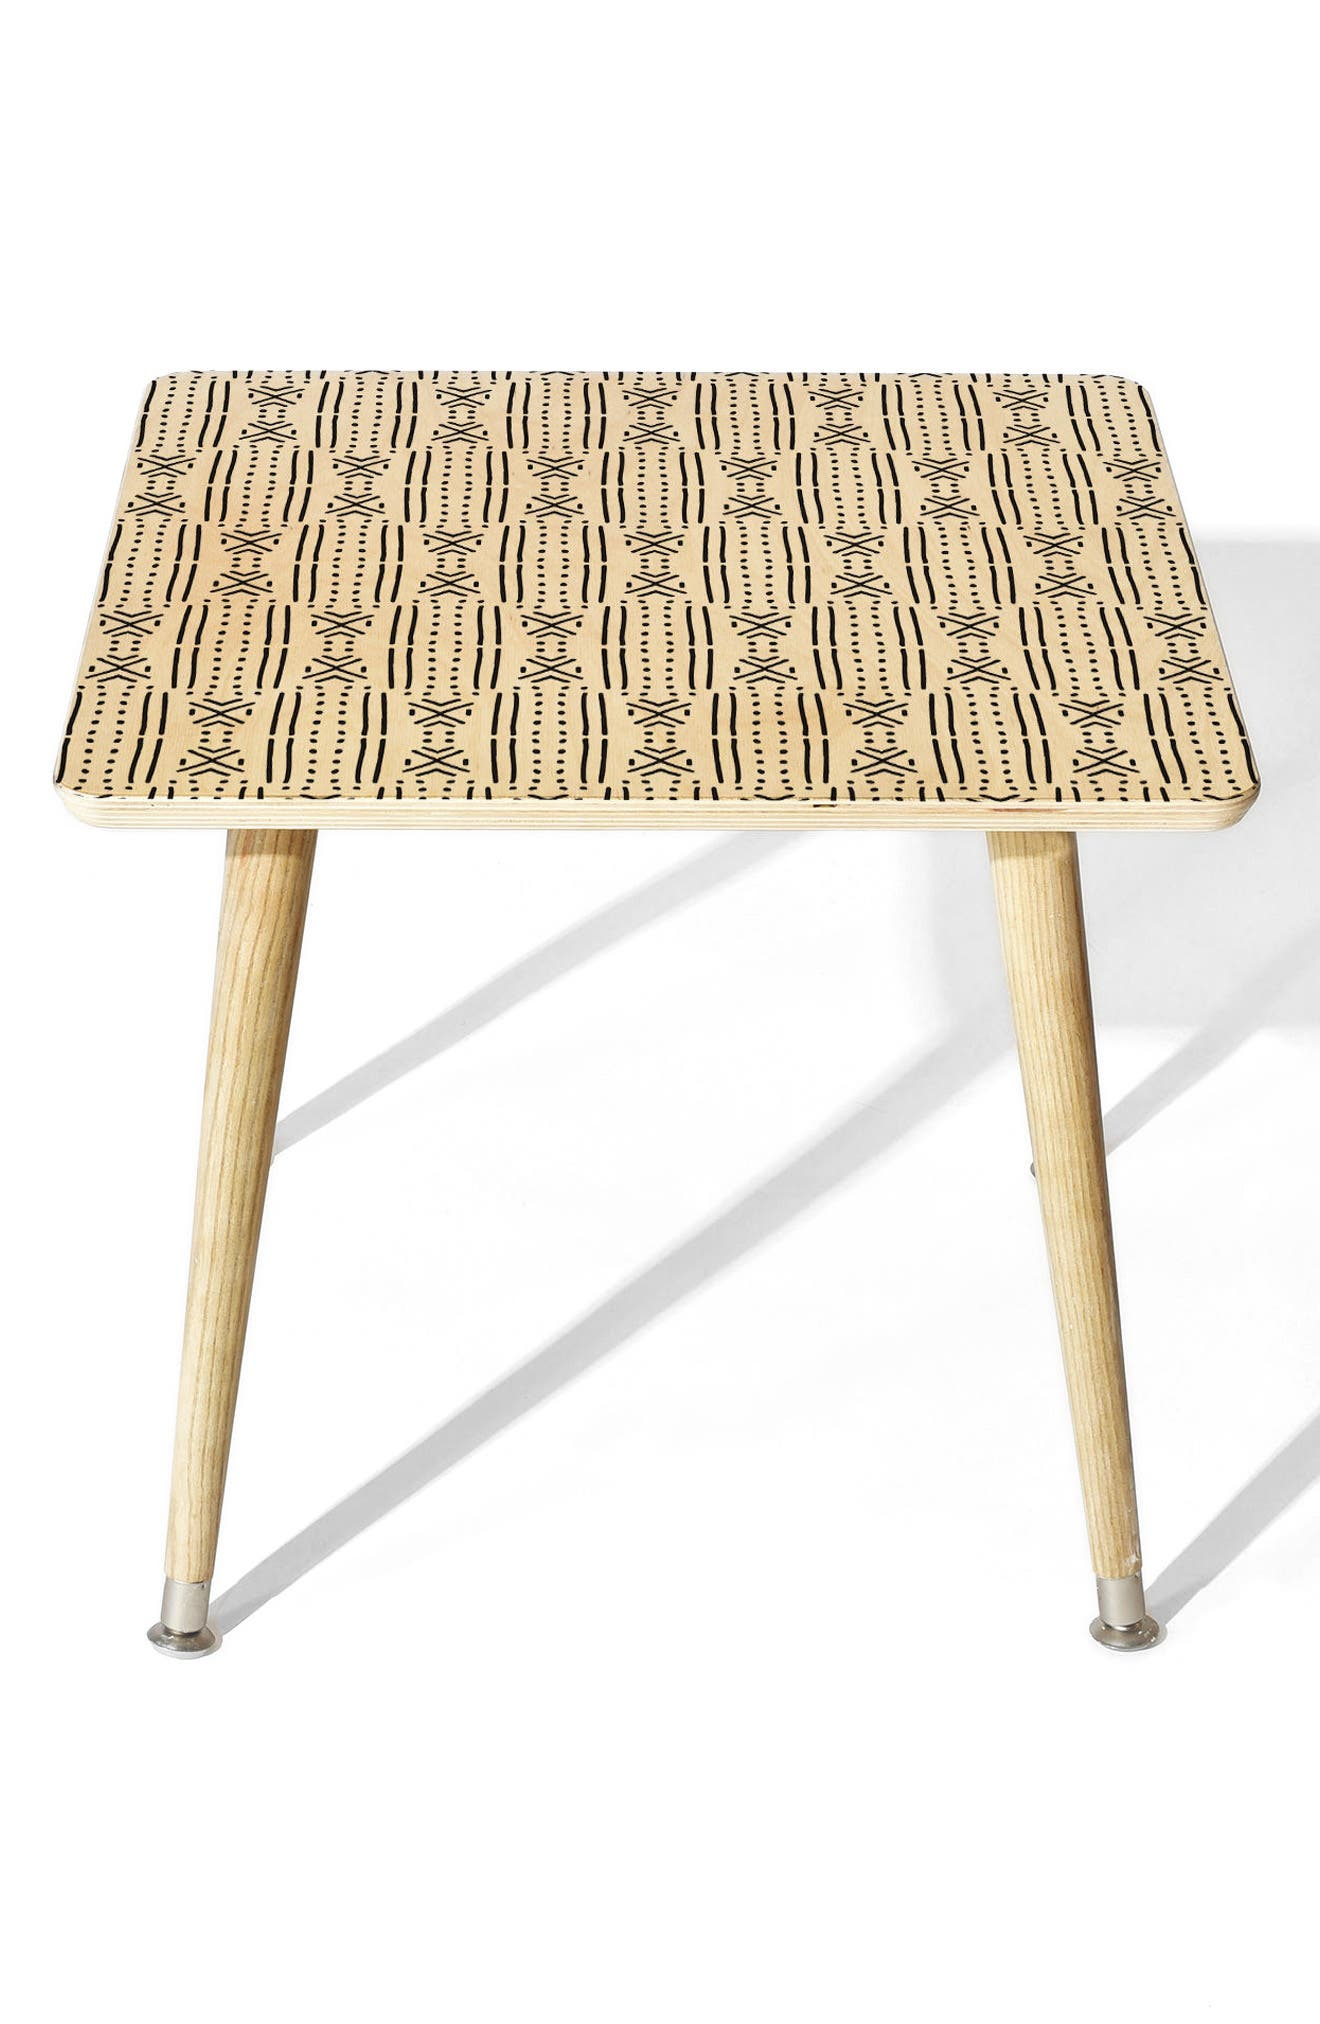 DENY Designs Mudcloth Side Table